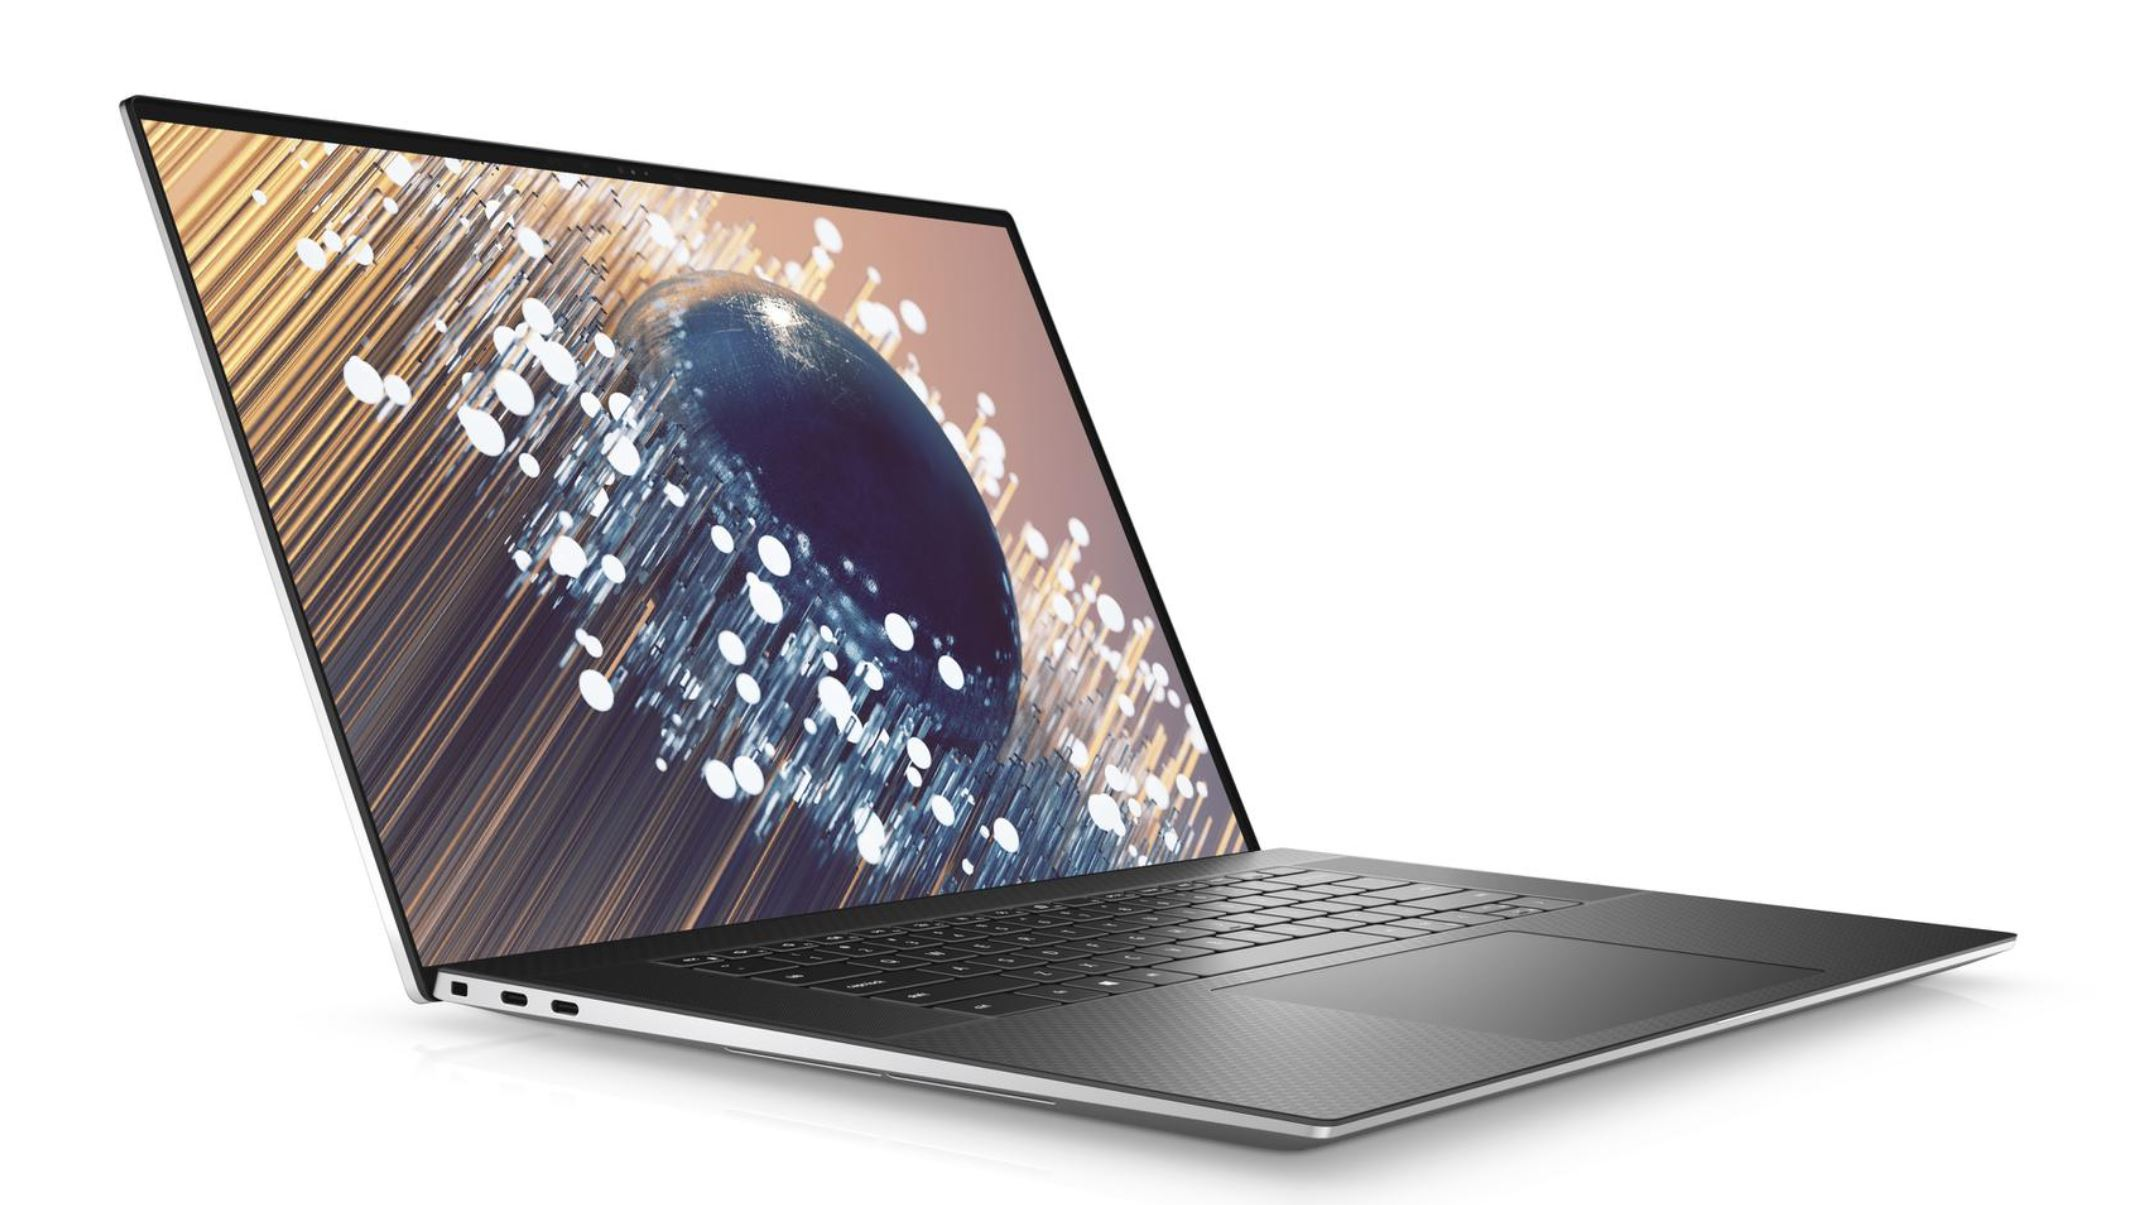 Dell launches XPS 15, XPS 17 laptops